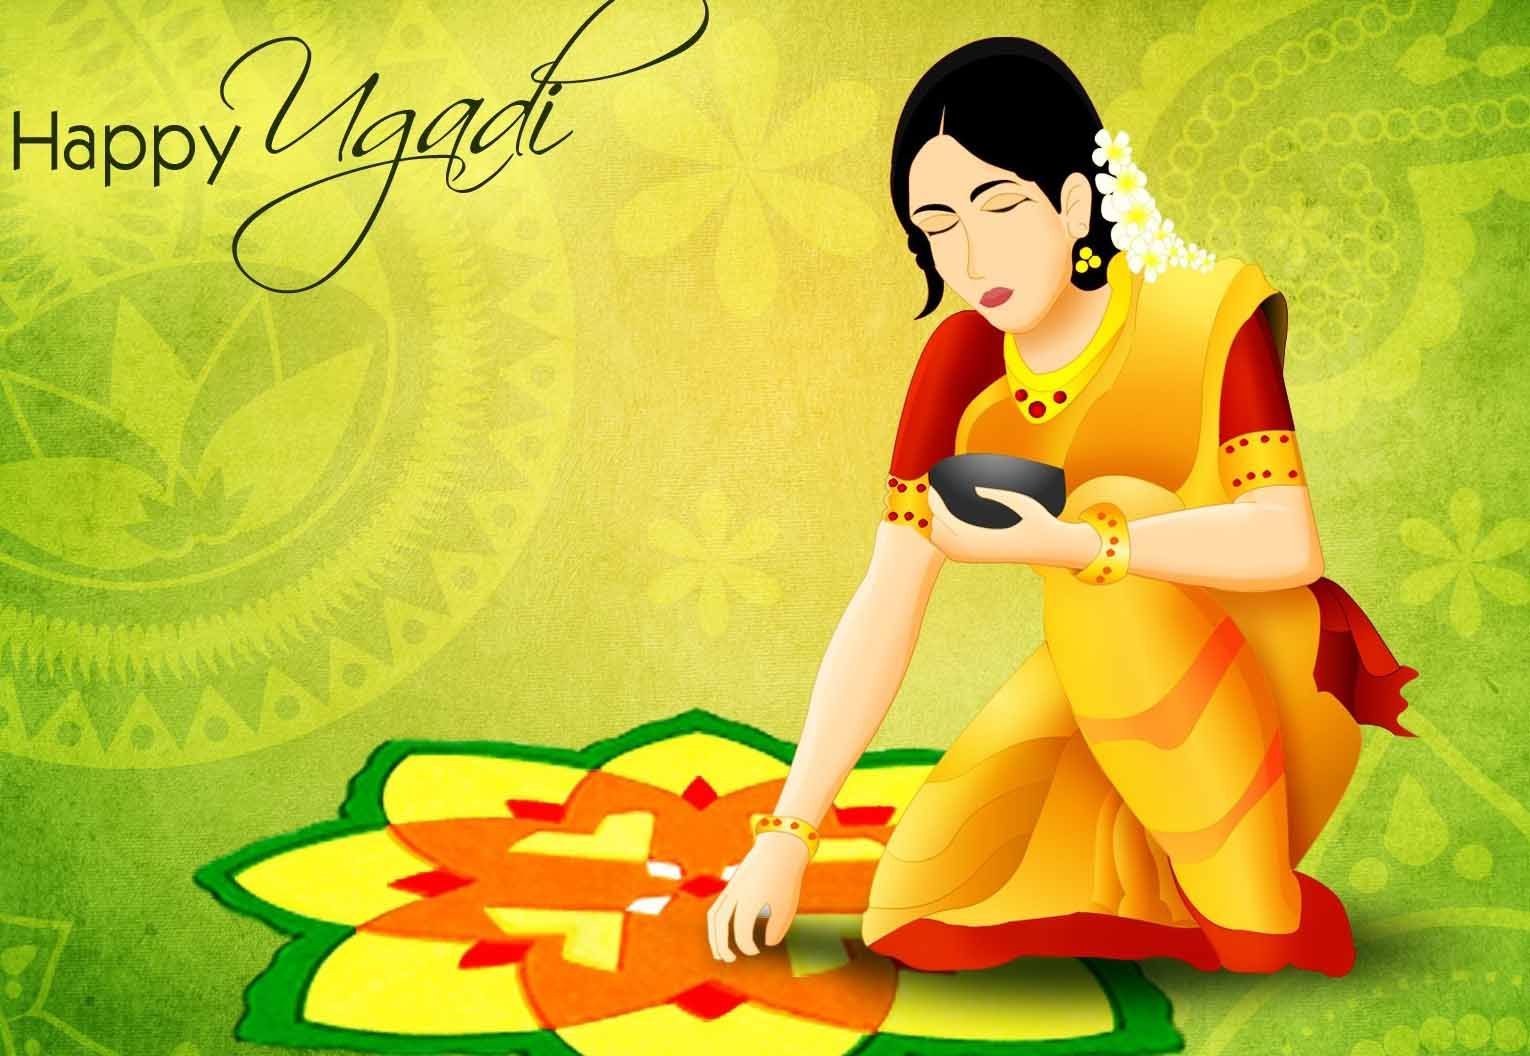 Happy Ugadi Greetings Cards Wishes Images Sms Quotes Whatsapp Status Dp Profile Pics Live Eagle Diwali Images Festival Image Wishes Images